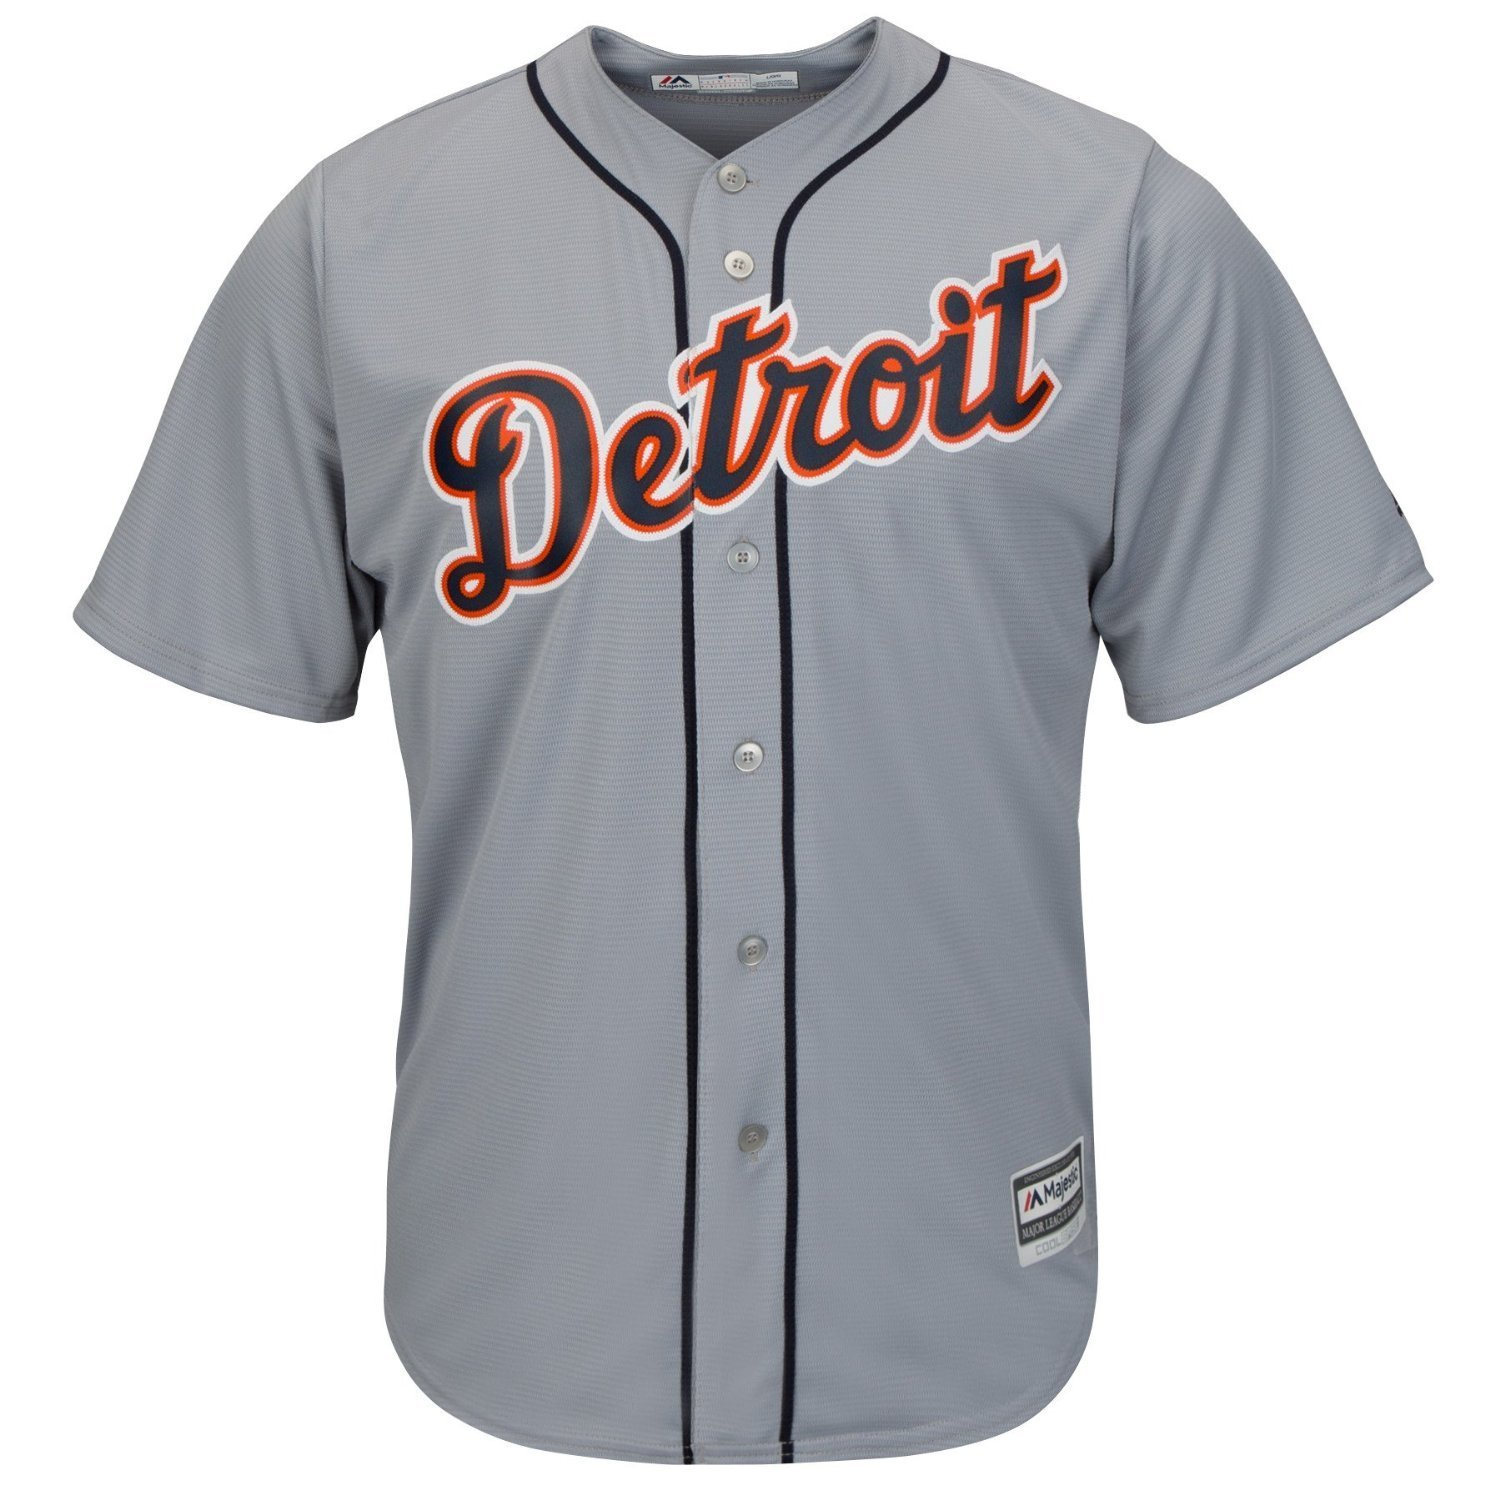 Detroit Tigers Youth Cool BaseチームRoad Jerseyグレー B078SCXR5XYouth Medium 10/12